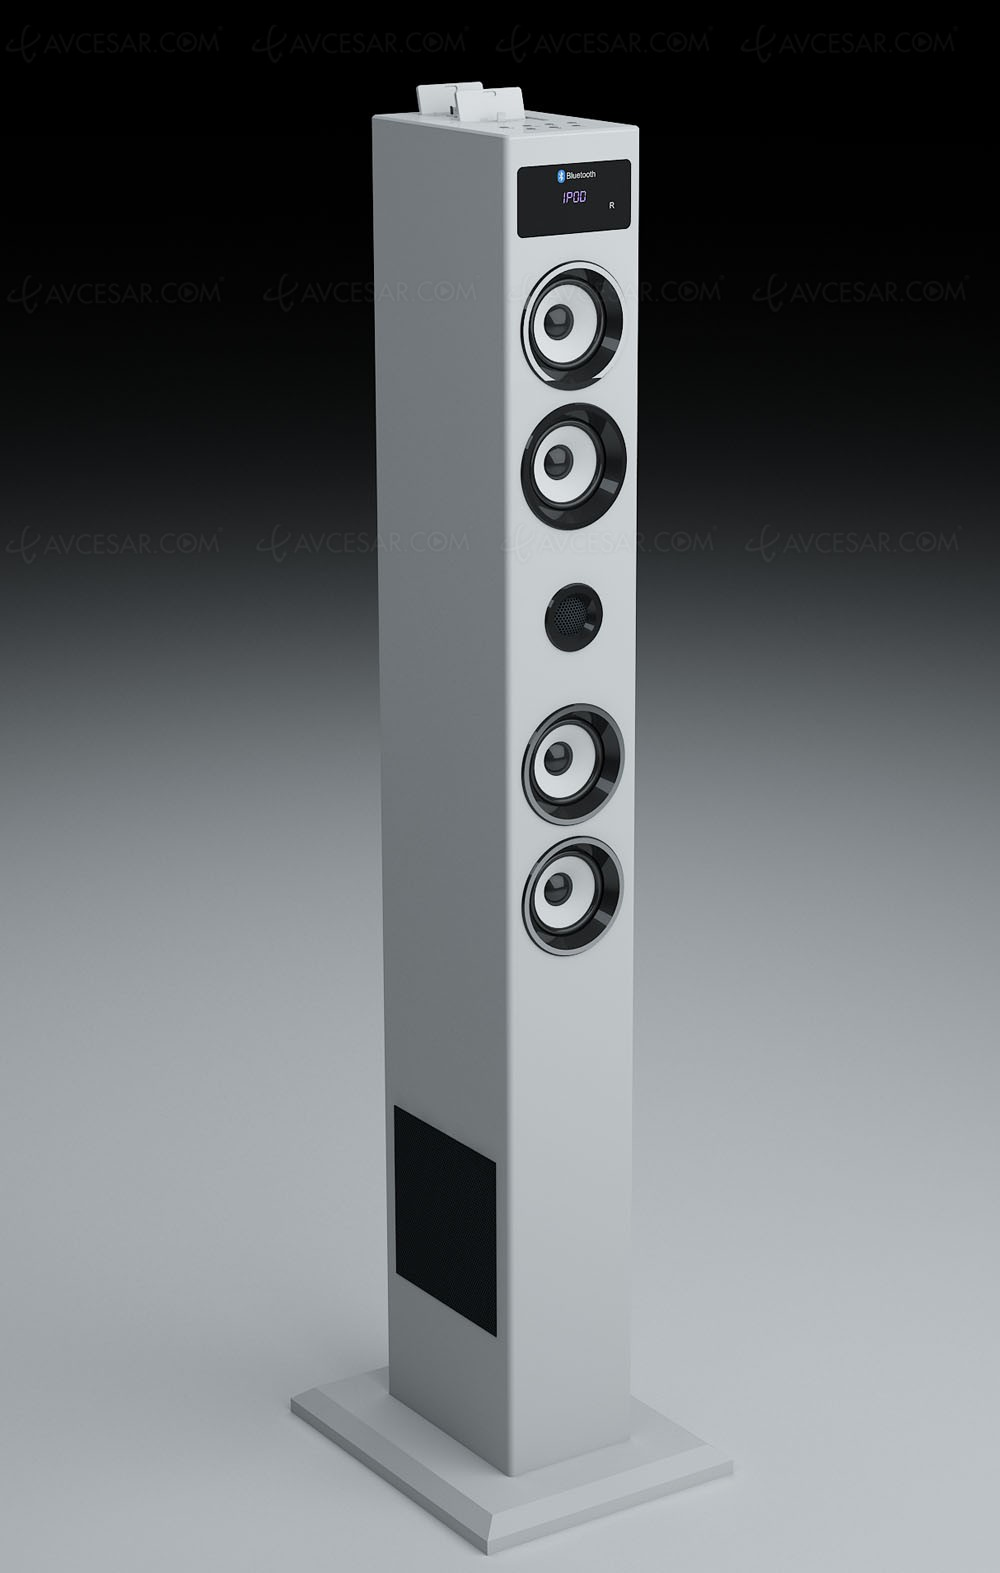 soundvision soundtower 70 tour d 39 accueil apple bluetooth. Black Bedroom Furniture Sets. Home Design Ideas